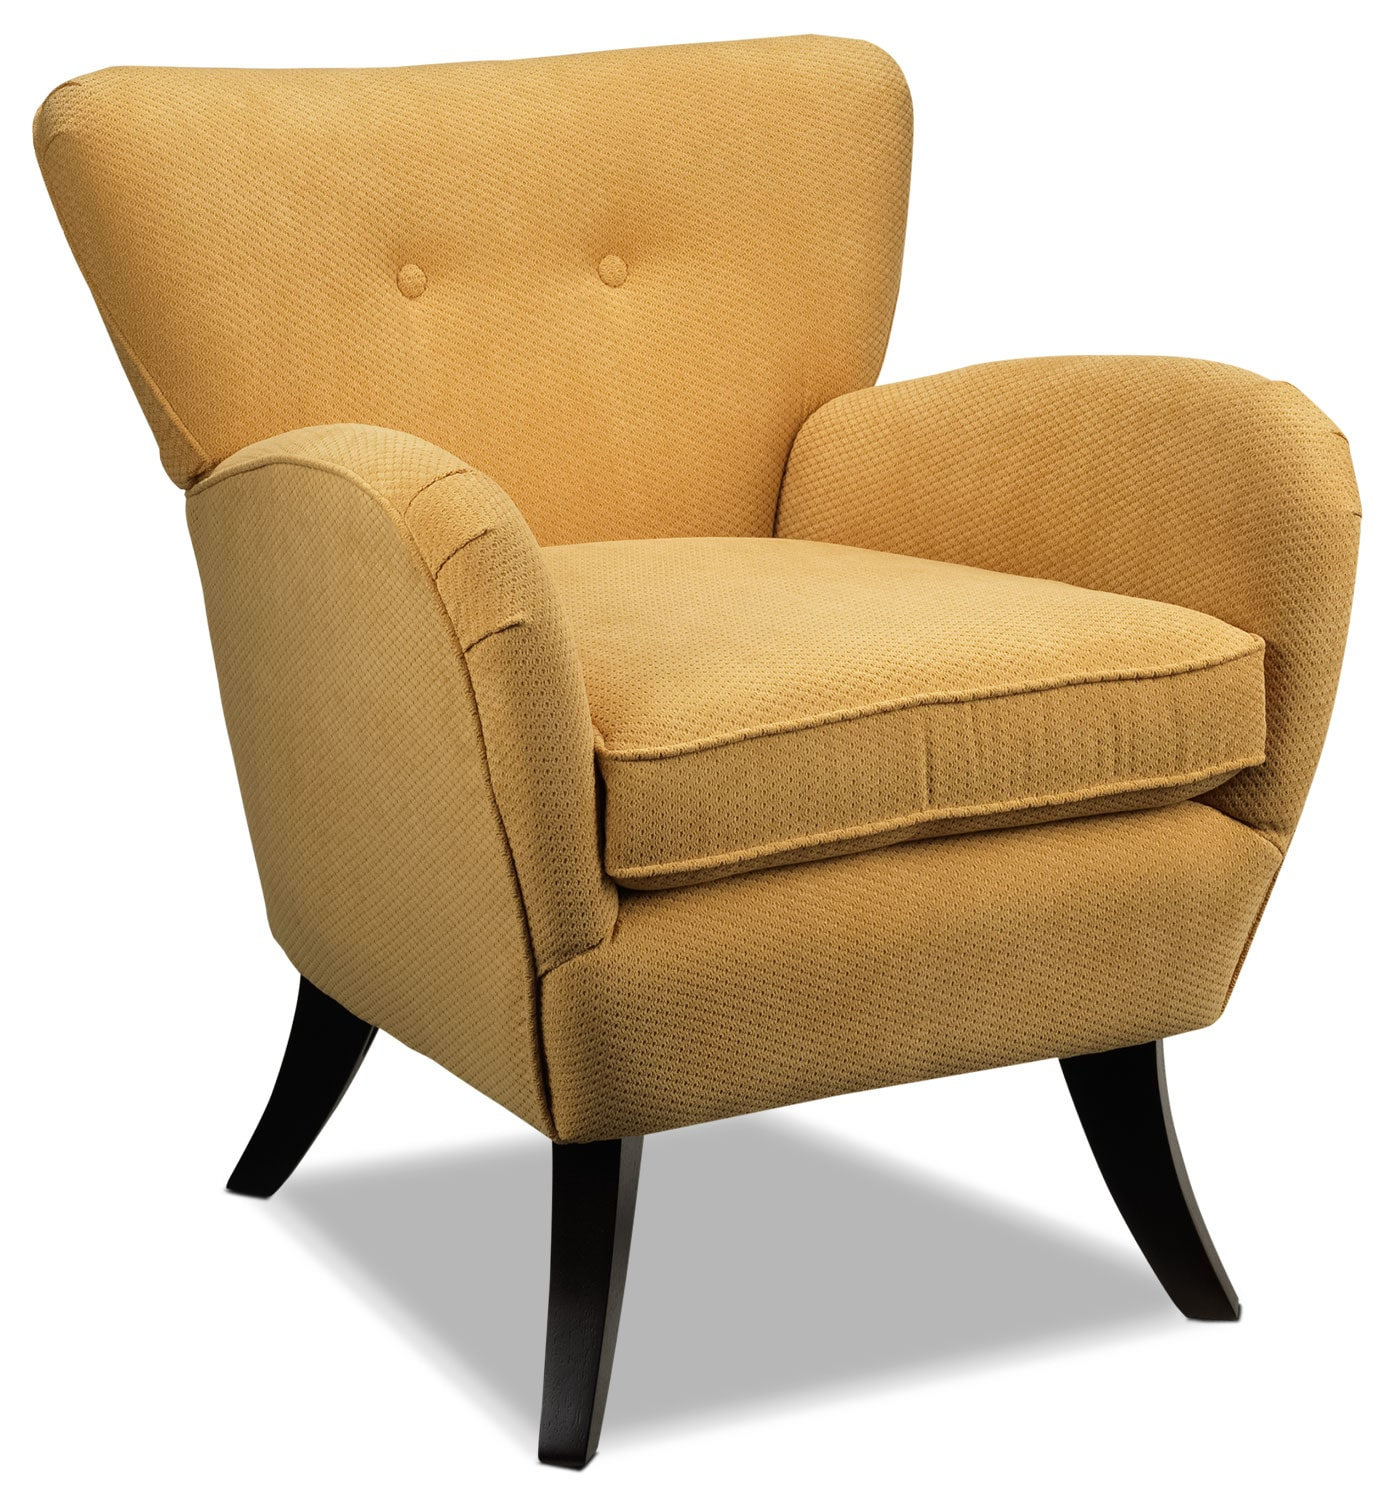 Accent and Occasional Furniture - Elnora Accent Chair - Lemon Yellow